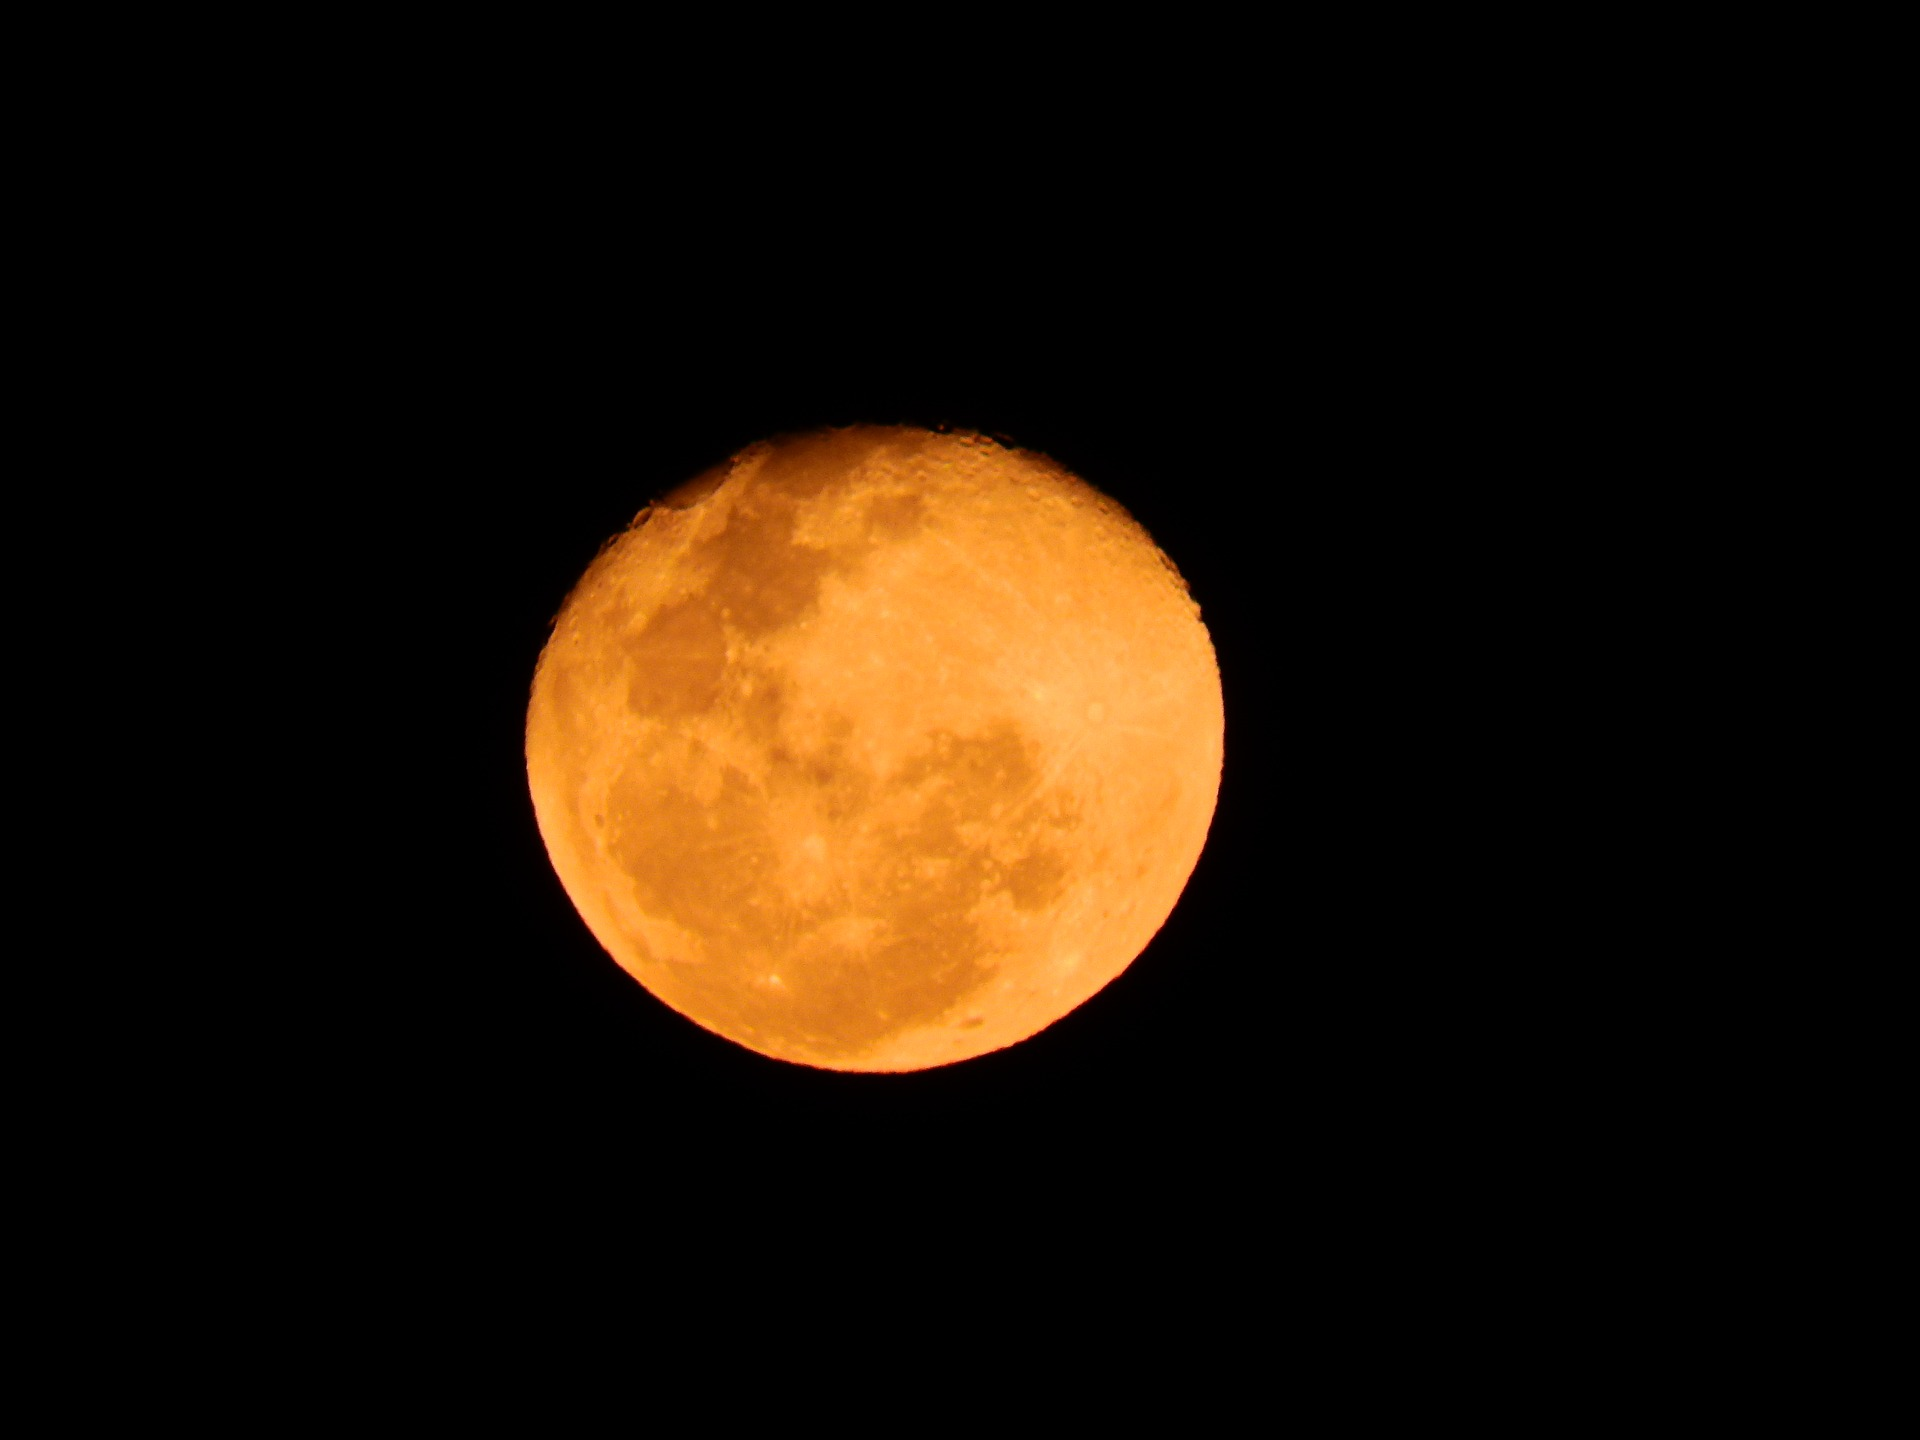 Rare 'Strawberry Moon' will light up skies above UK tonight - when to see it